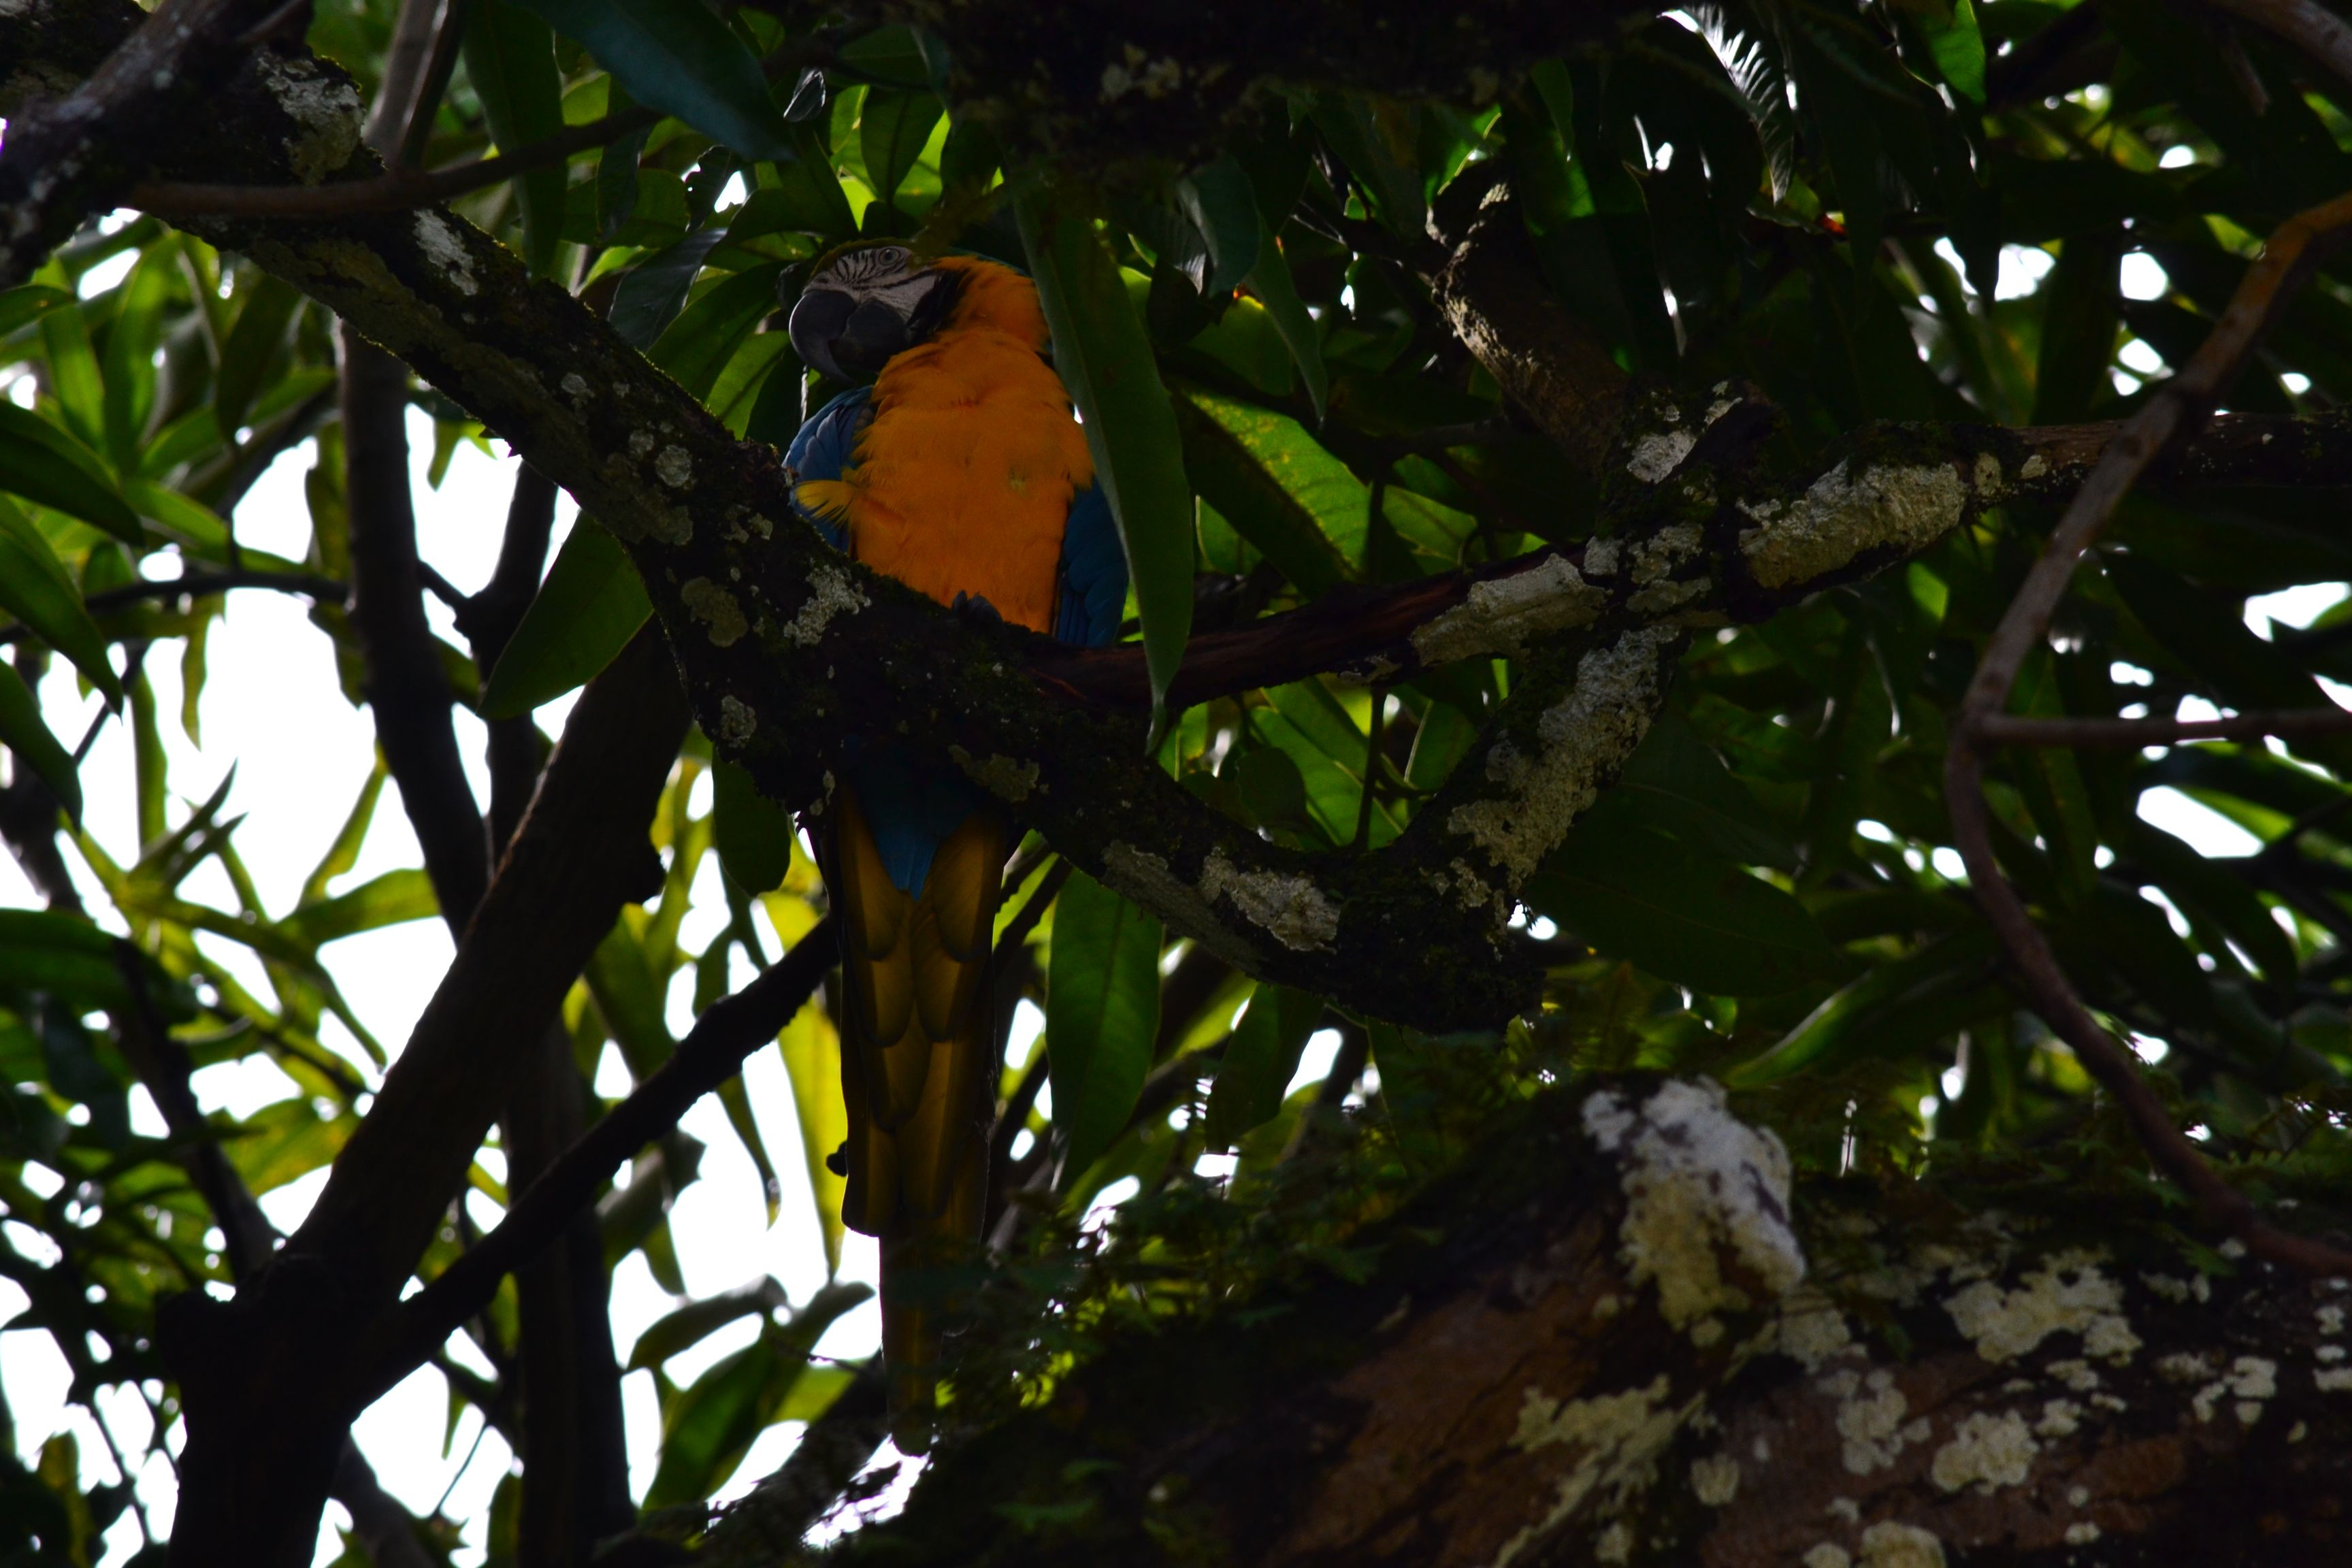 Blue Macaw in the deep shade of a mango tree